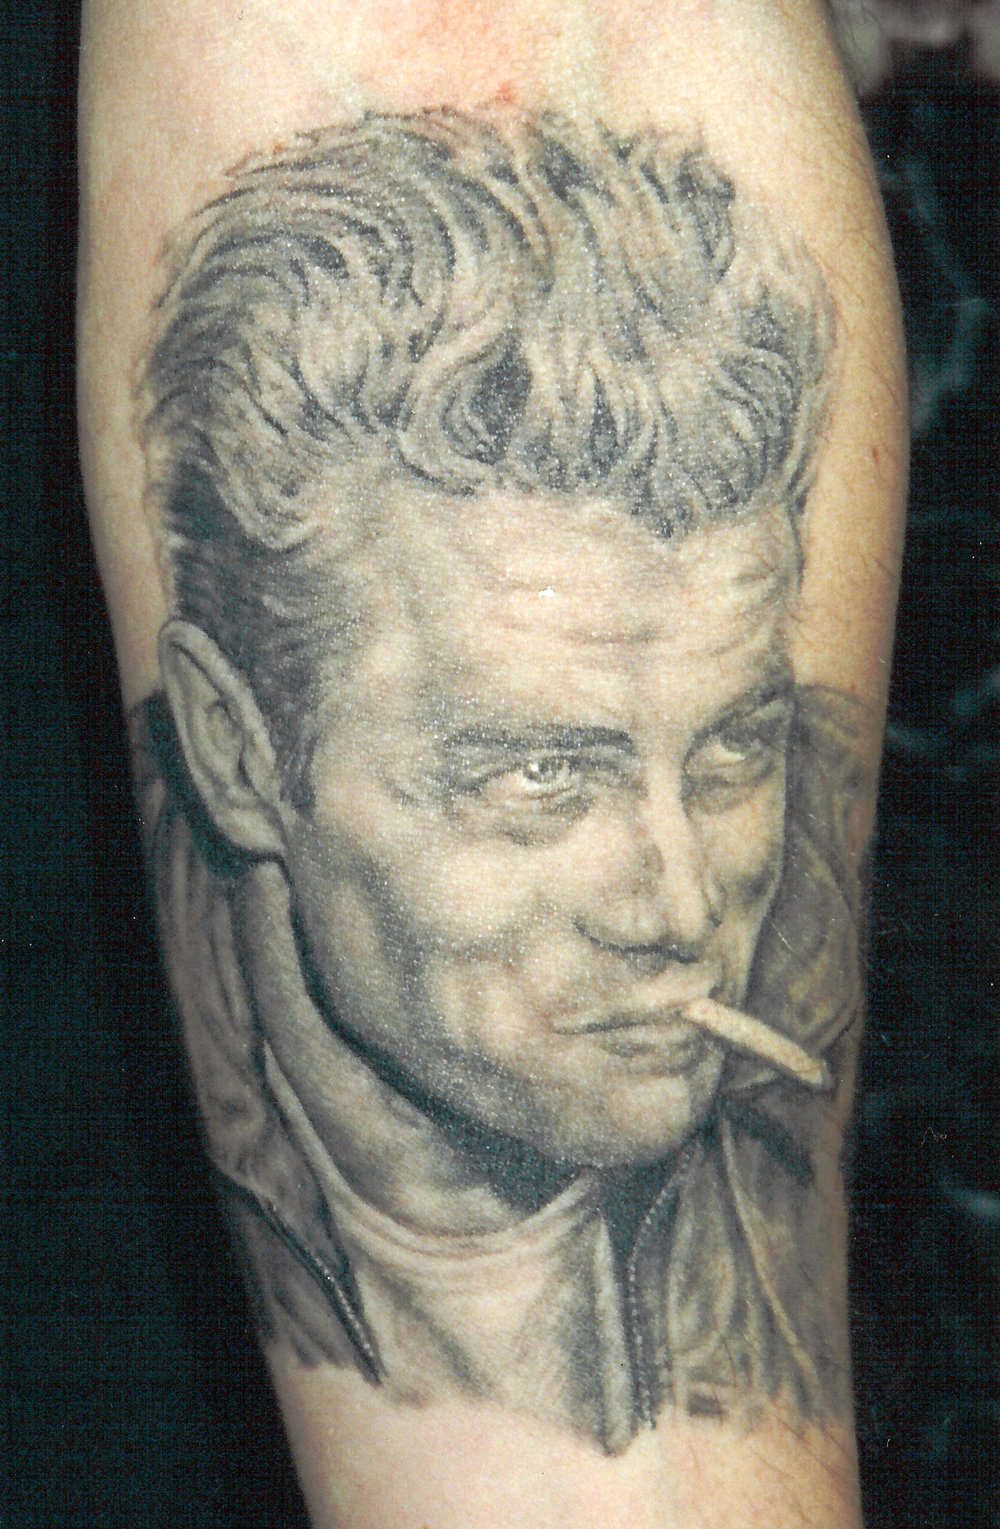 Black and Grey James Dean Portrait Tattoo, (healed) tattooed in 2000